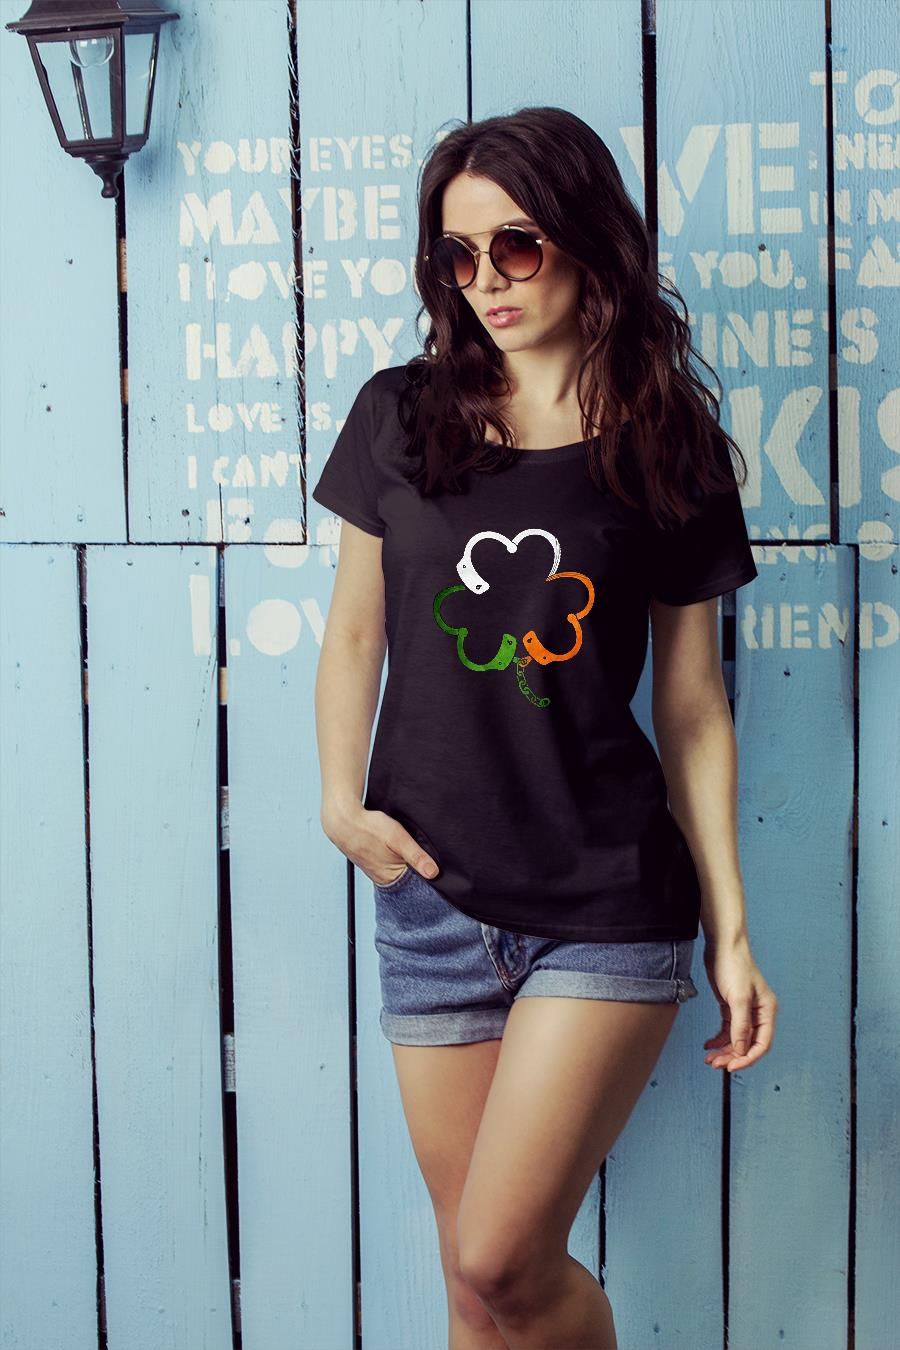 NEW POLICE SHAMROCK SHIRT ladies tee official